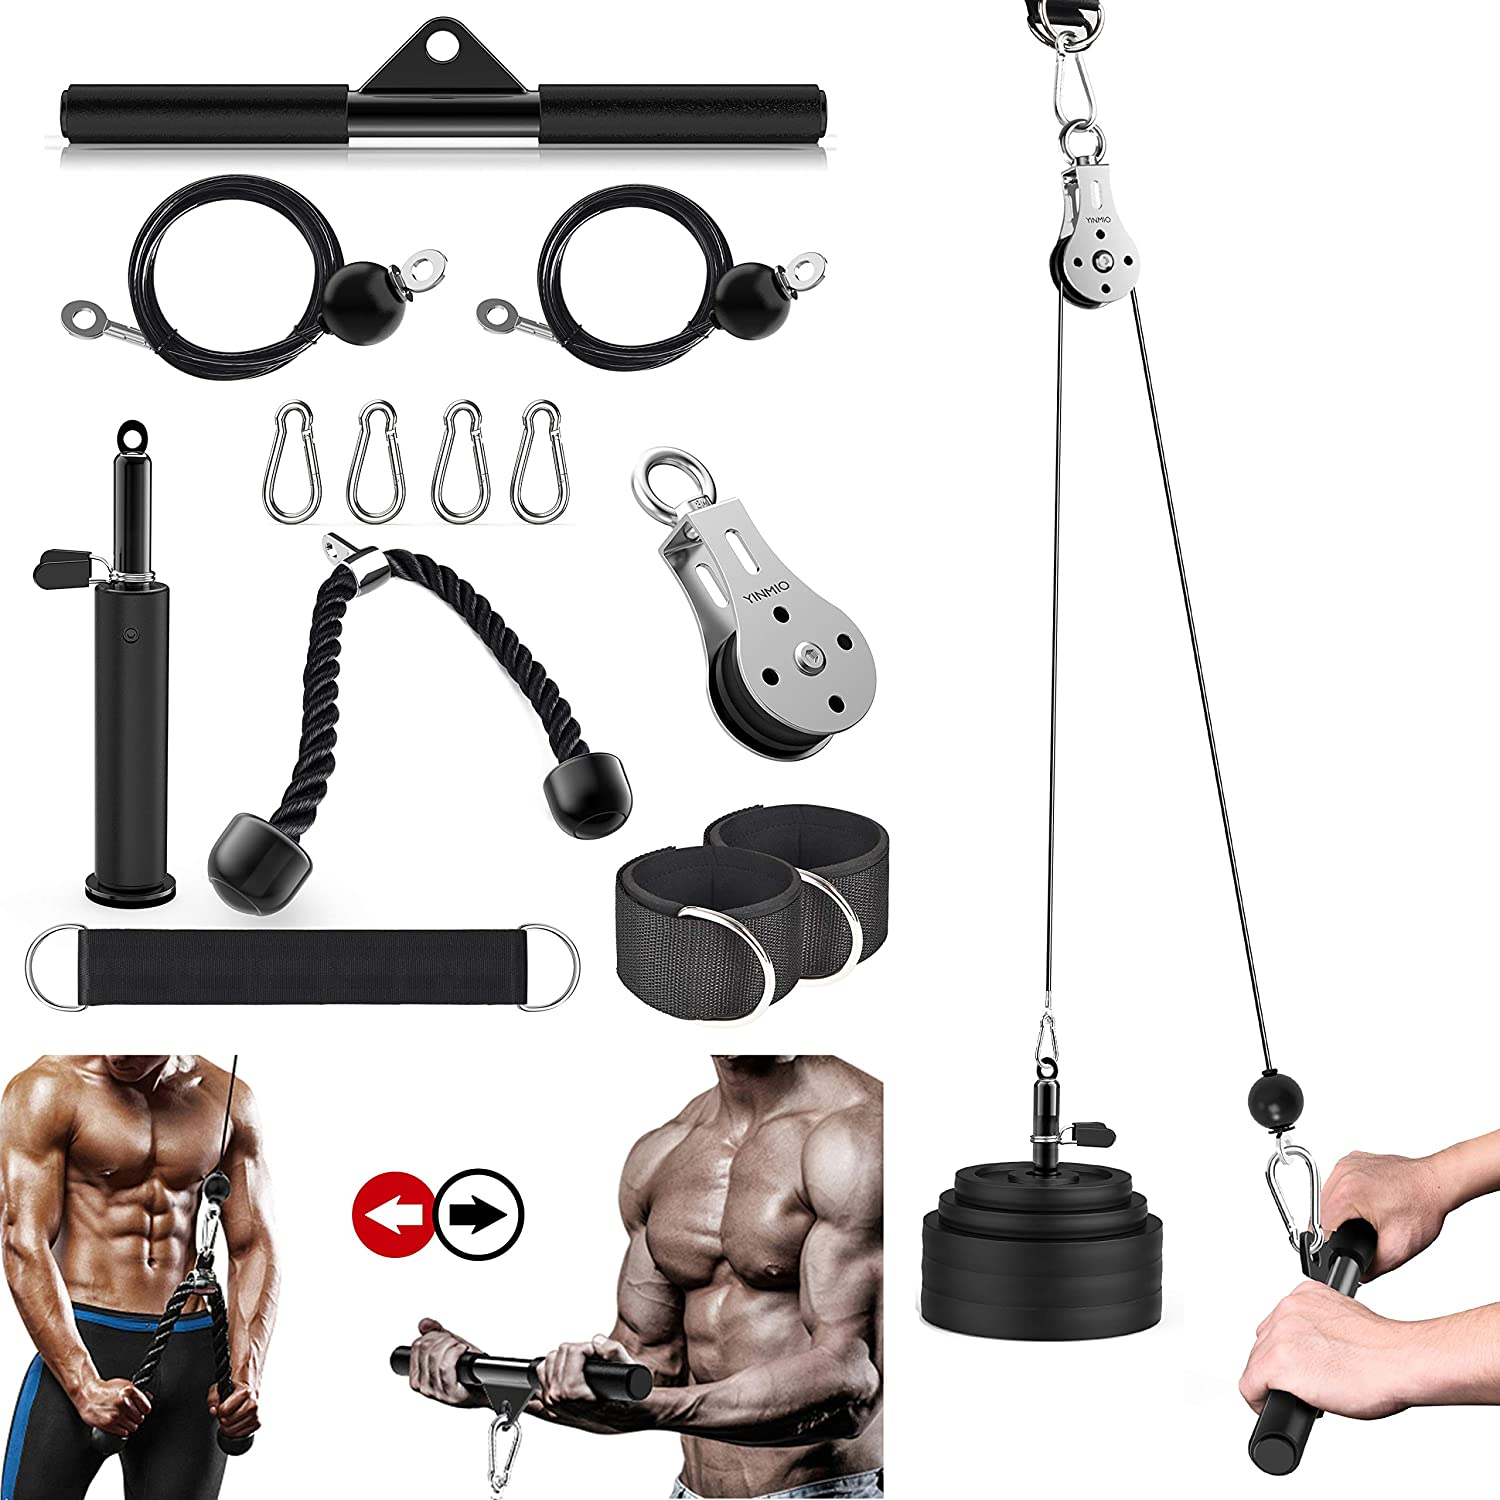 Cable Pulley, Triceps Pulley System for Arm Strength Training, (70'' and 90'') DIY Pulley Cable Attachment, Fitness LAT and Lift Pulley System, for Triceps Pull Down, Biceps Curl, Back, Forearm, Etc